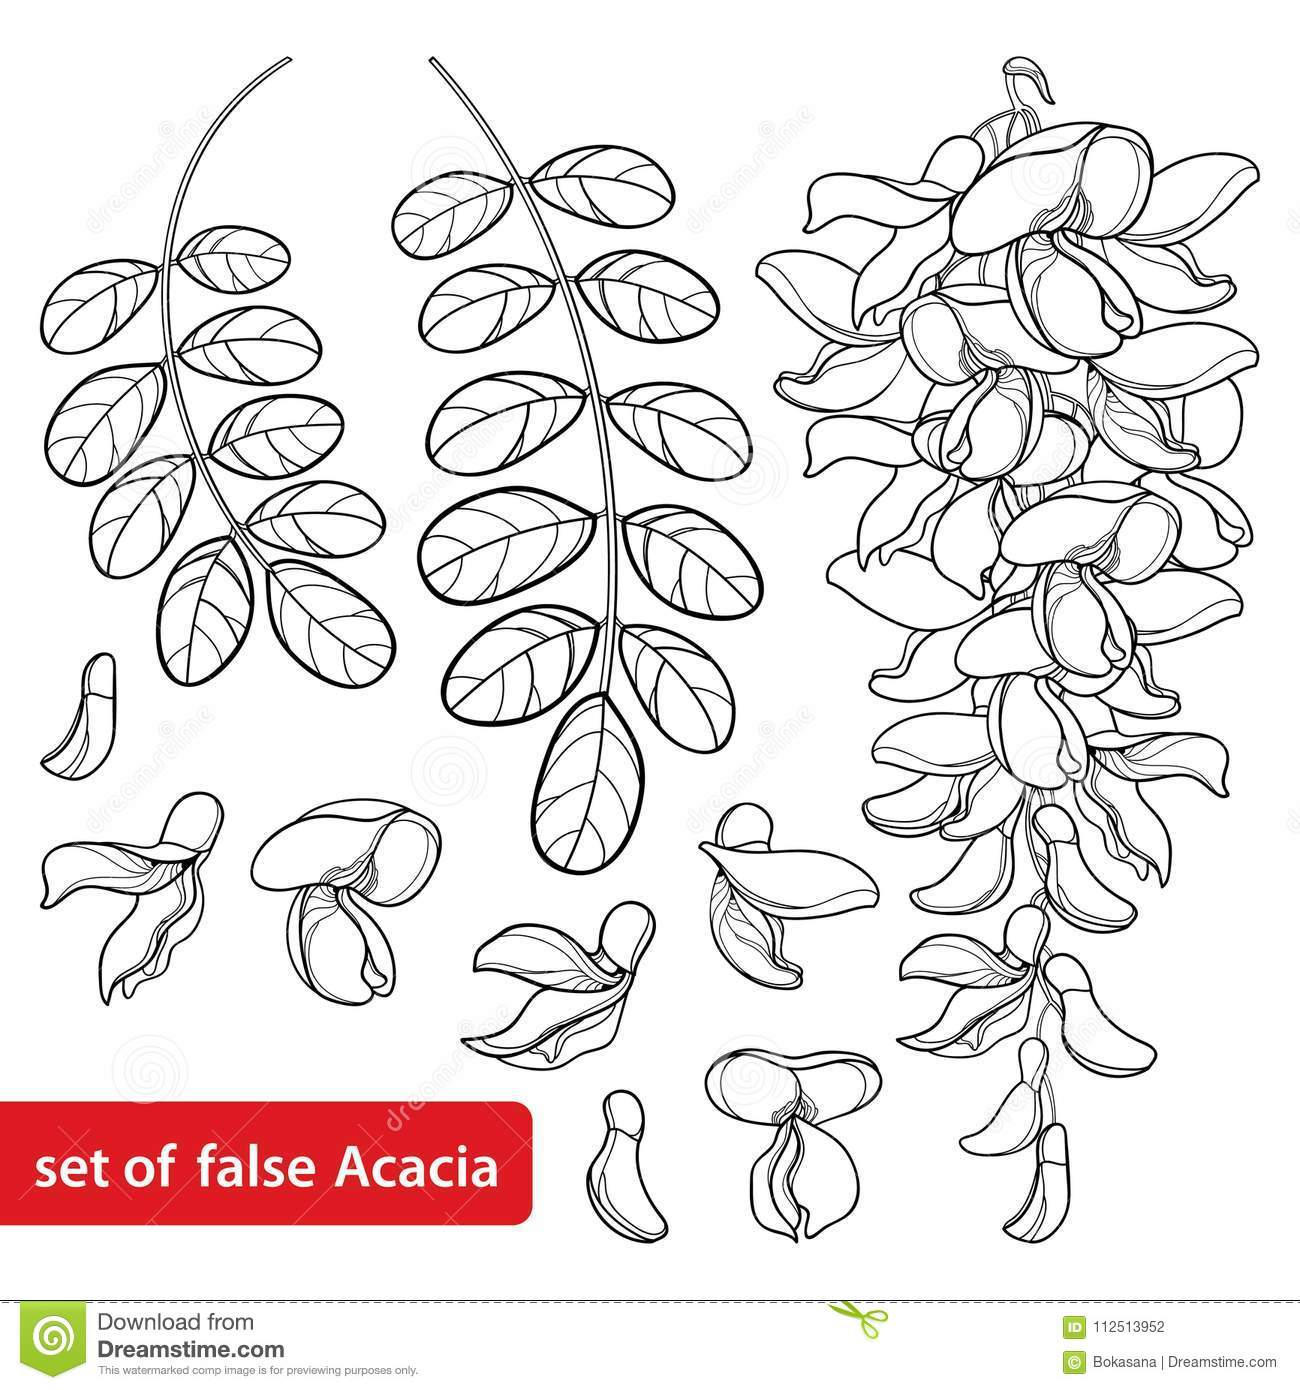 Vector set of outline white false Acacia or black Locust or Robinia flower bunch, bud and leaves in black isolated on white.